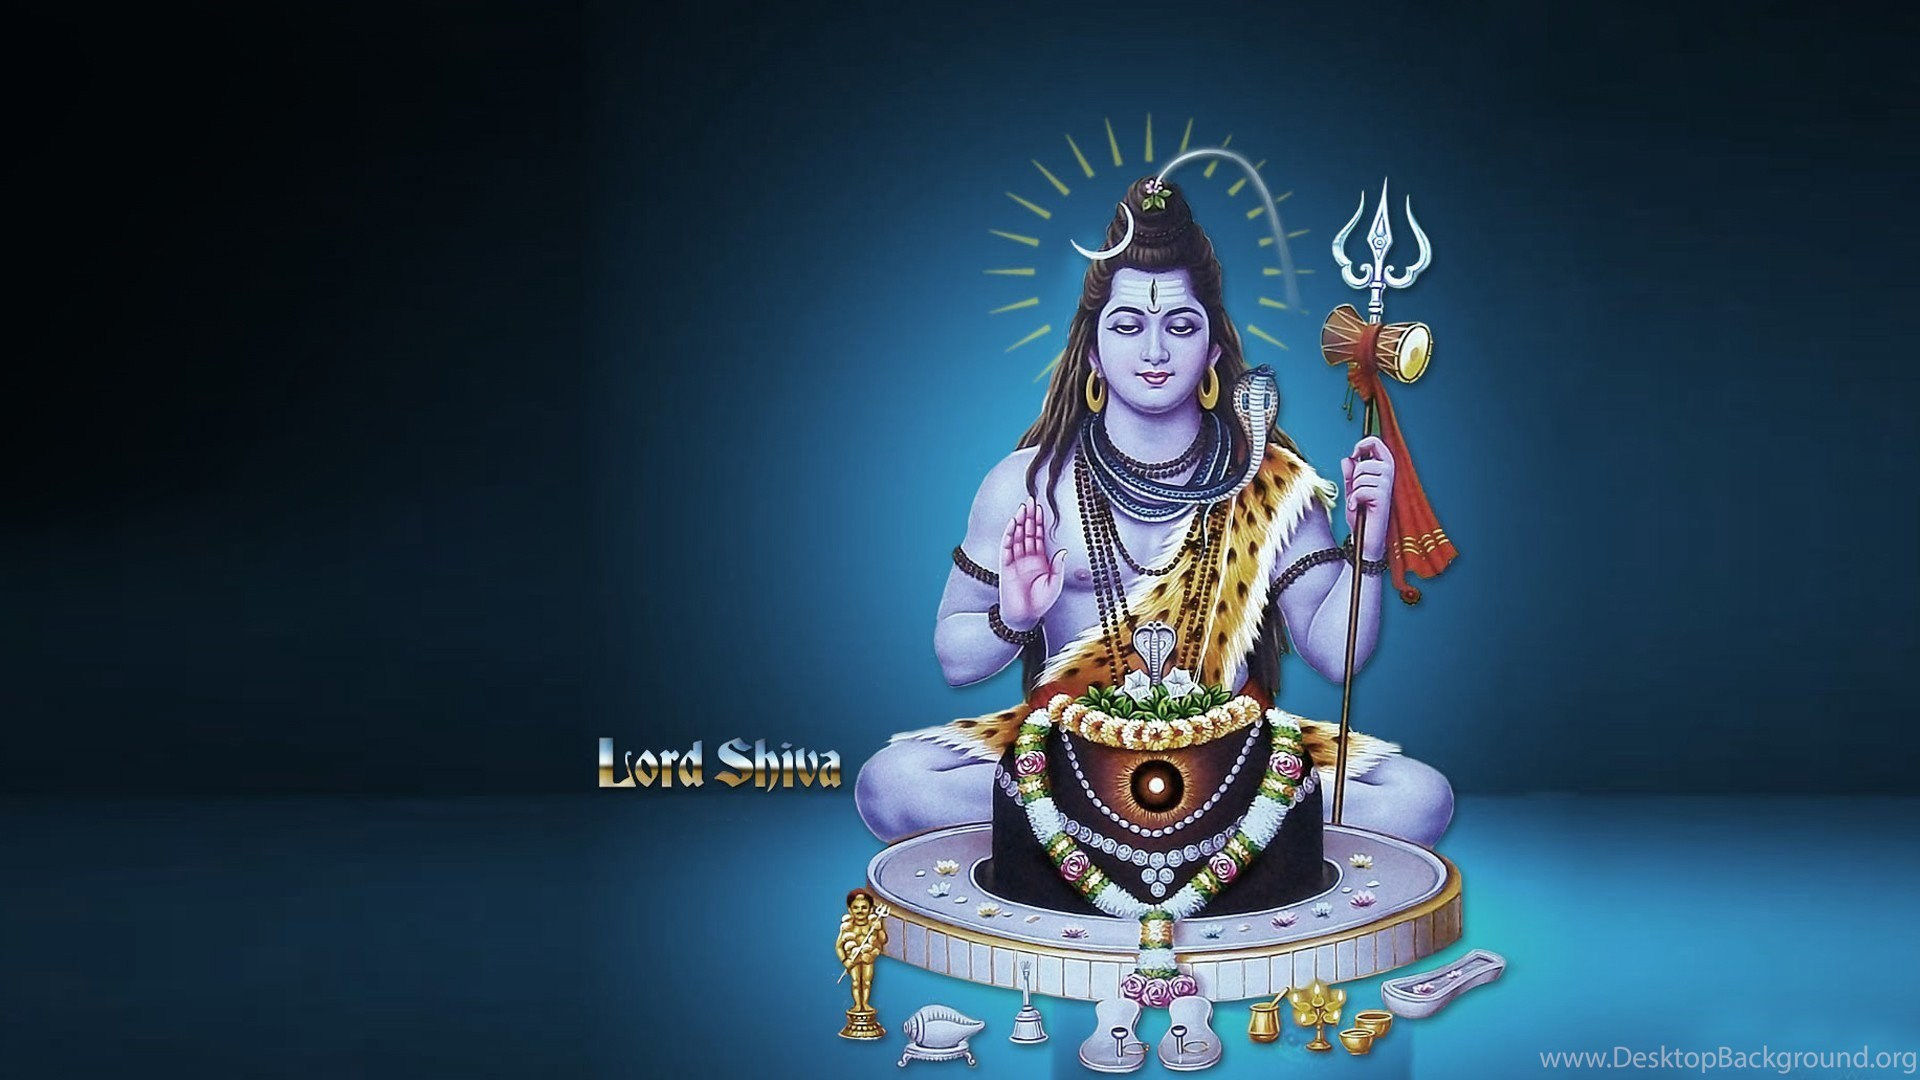 Simple Wallpaper High Resolution Lord Shiva - 777712_high-resolution-lord-shiva-wallpapers-hd-siwallpaperhd-23180_1920x1080_h  Collection_234865.jpg